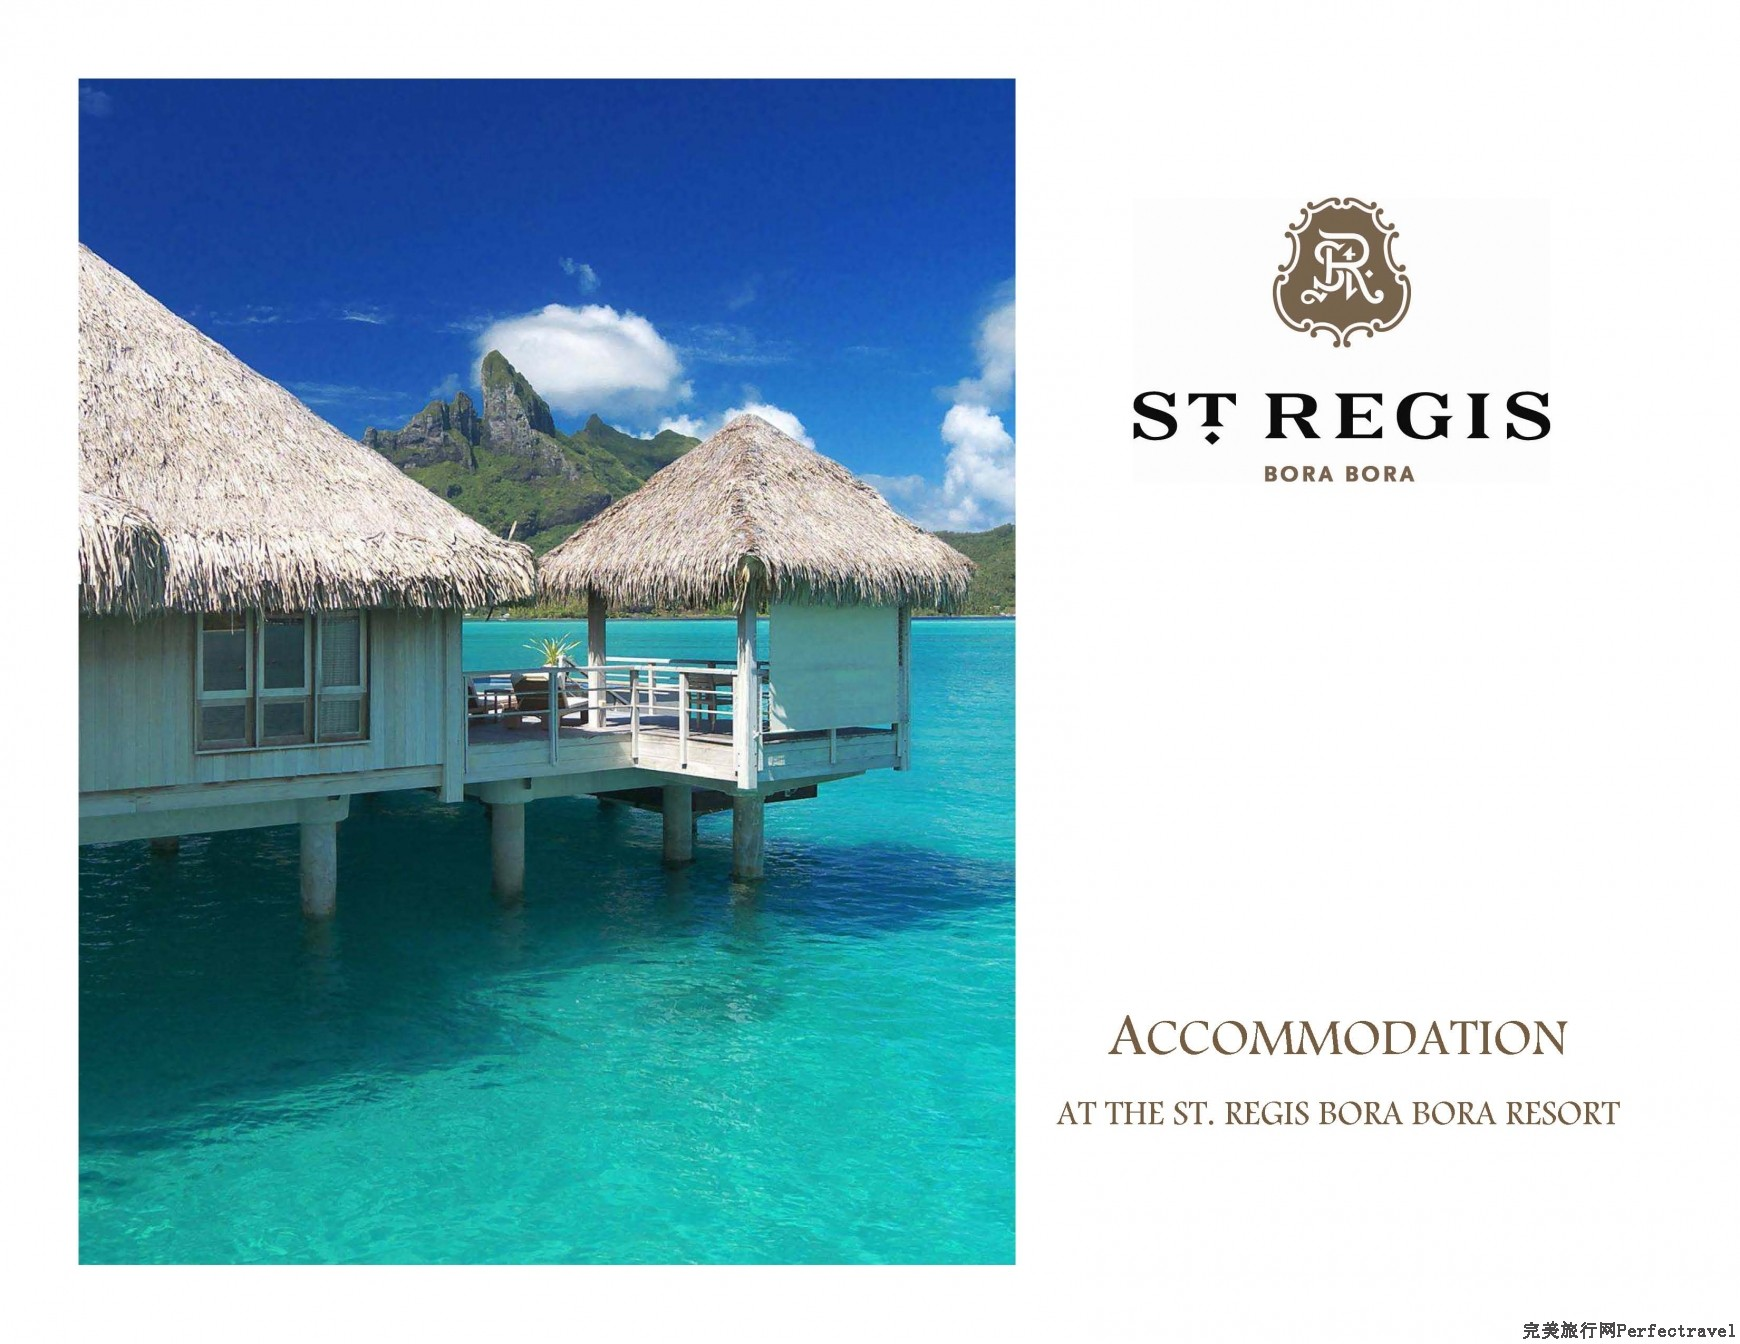 2013 - Accomodation at The St. Regis Bora Bora Resort.ppt_Page_01.jpg